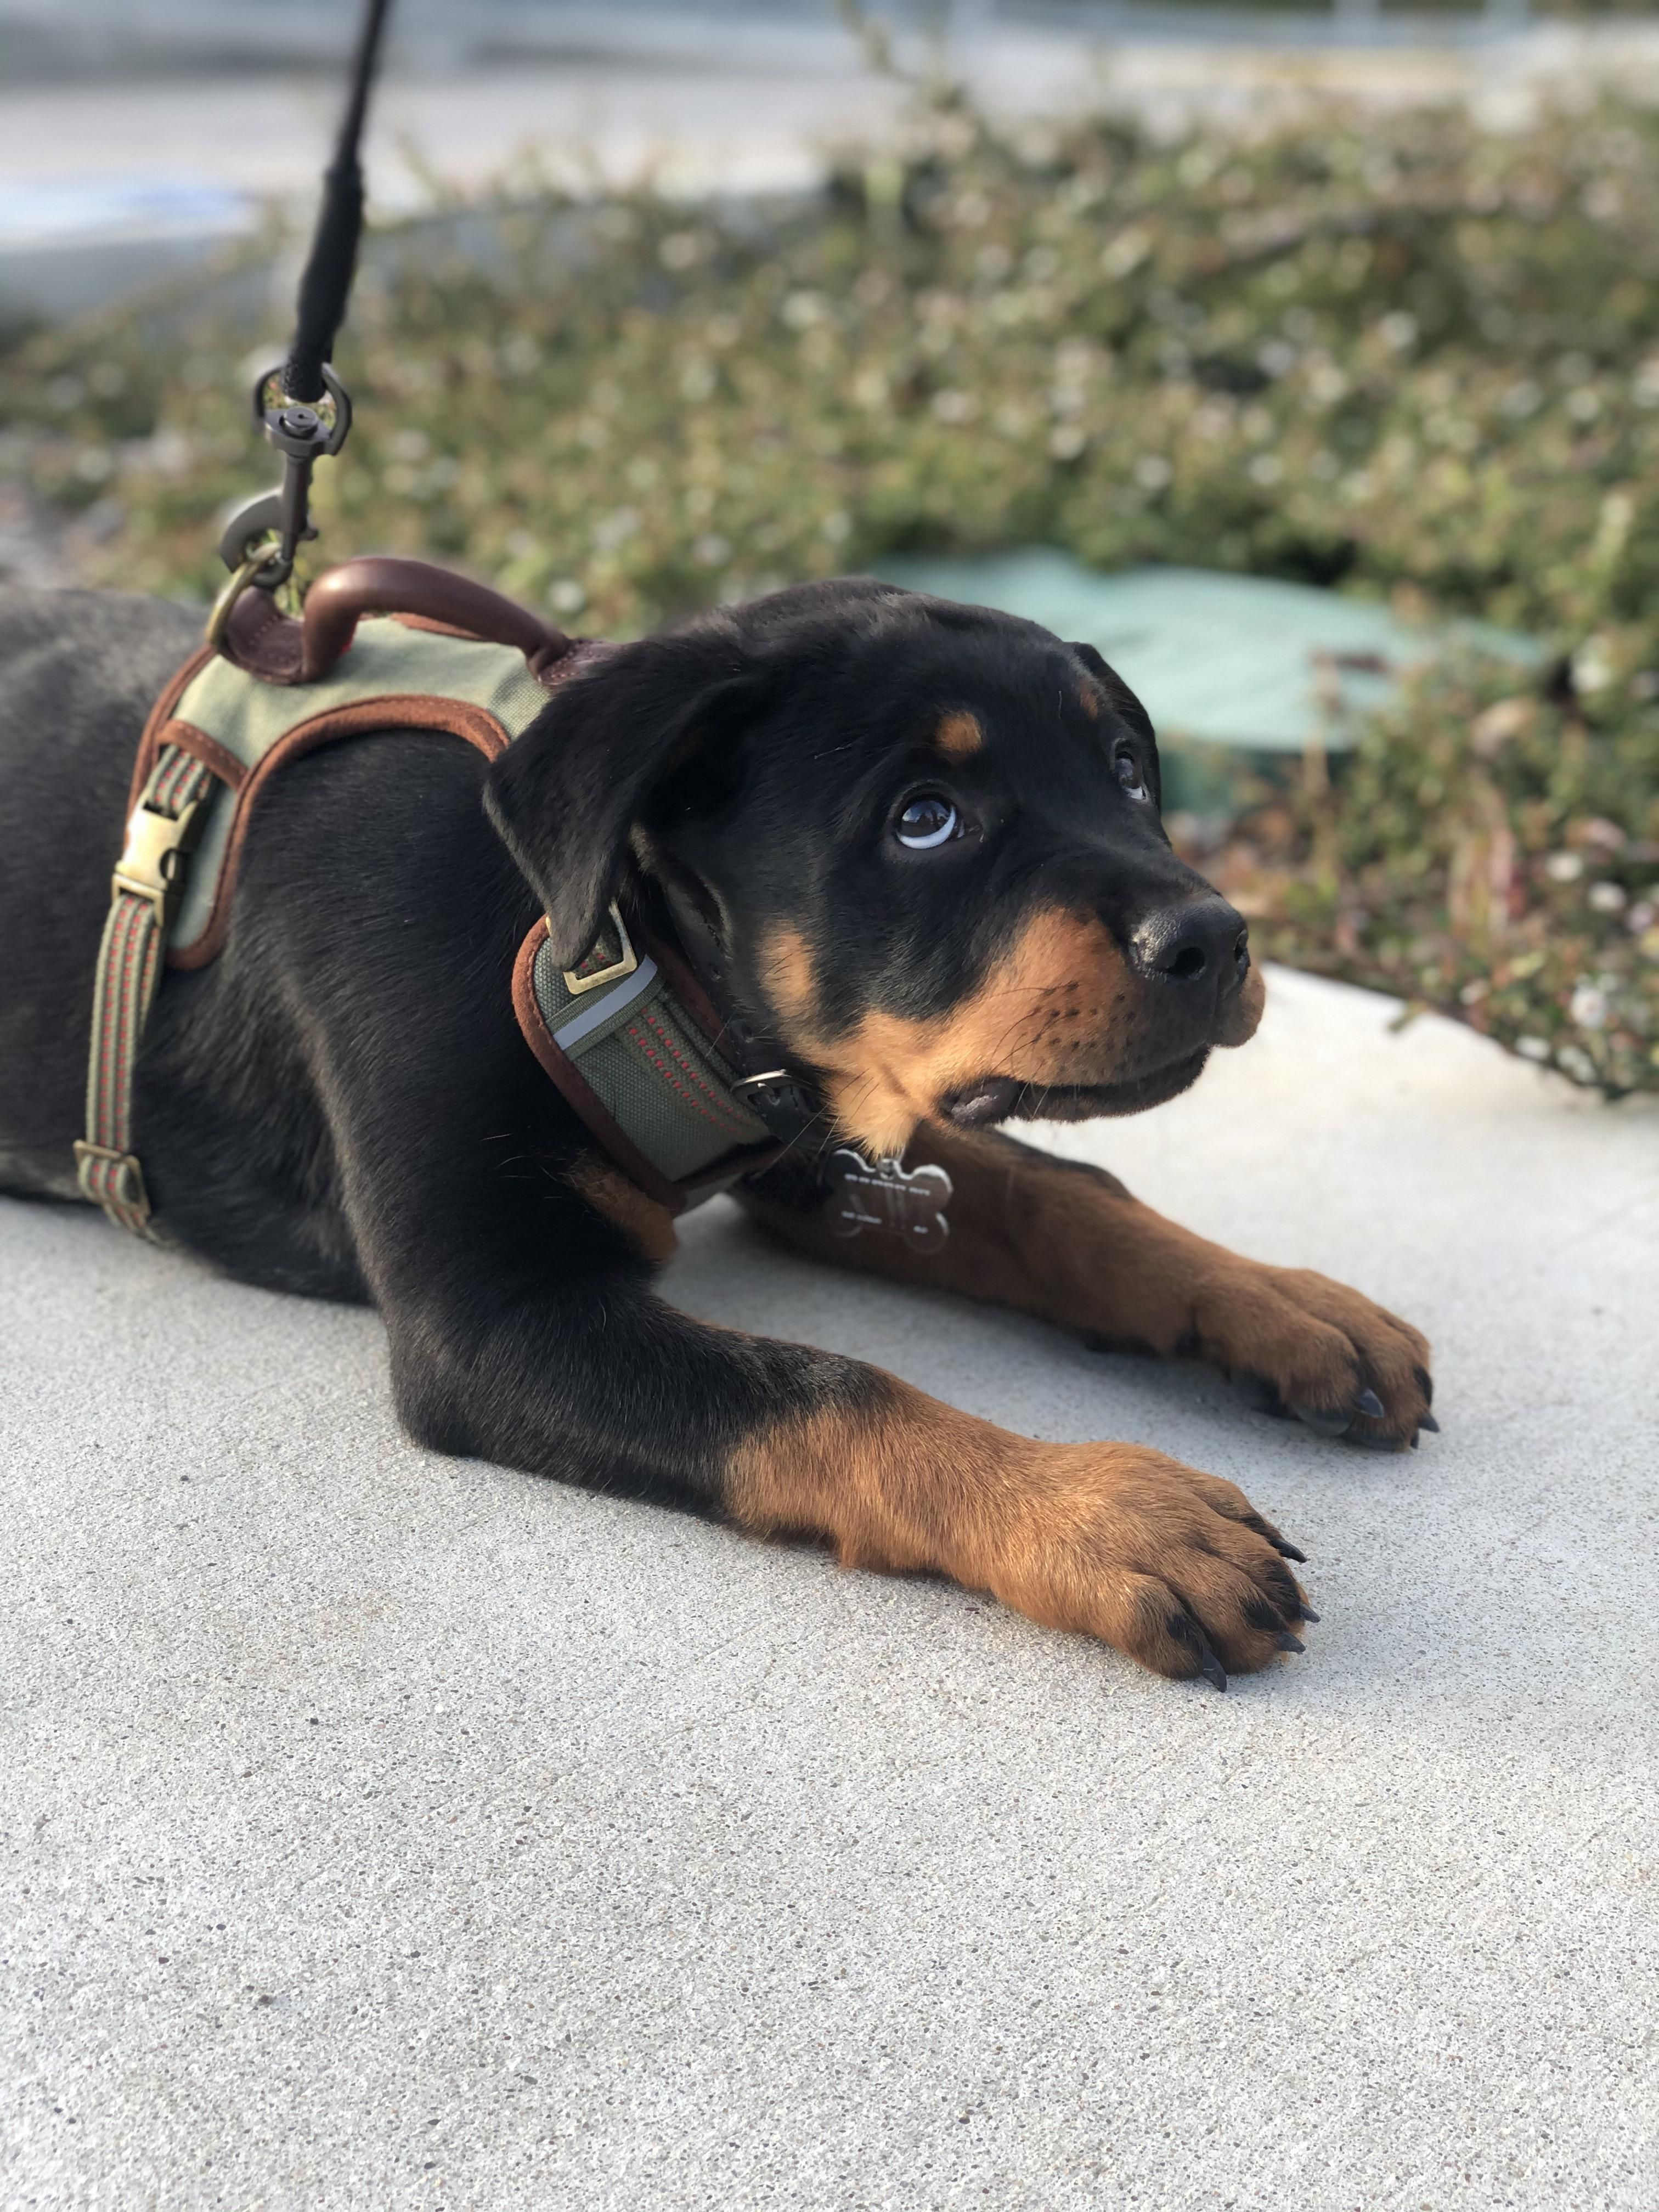 Kiwi The Rottweiler Pup Adorable Rottweilers In 2020 Rottweiler Mix Rottweiler Puppies